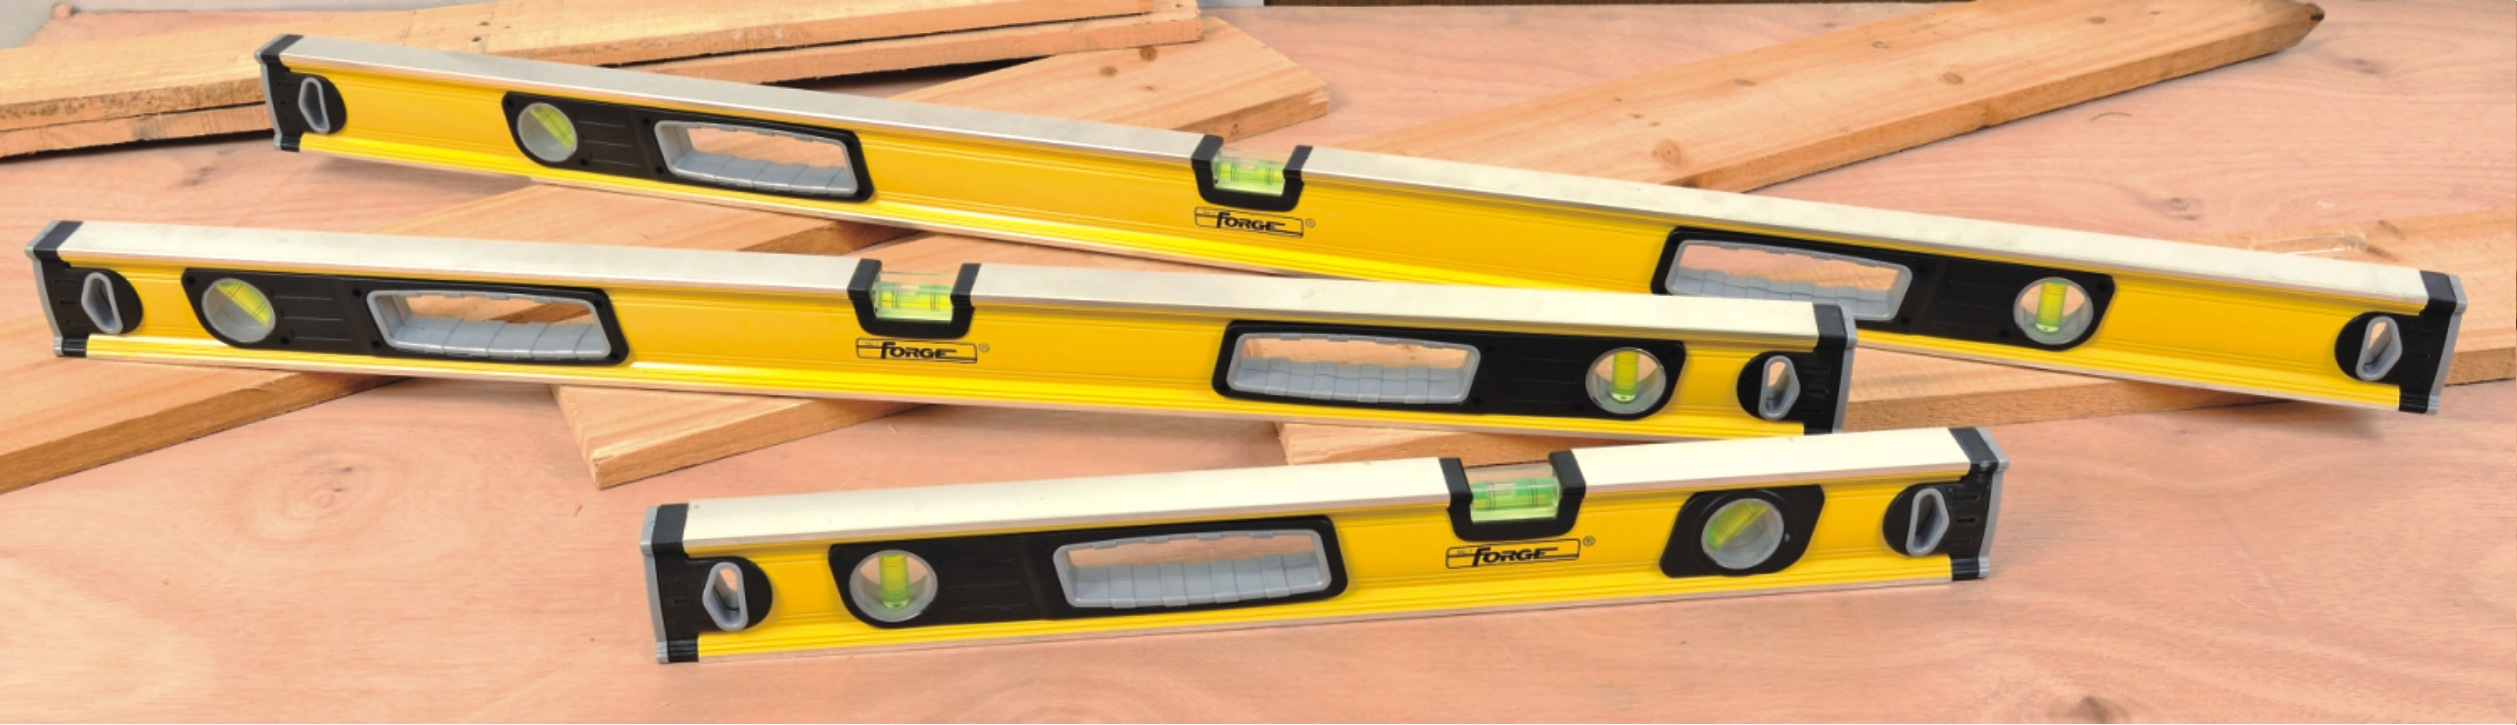 "High Accuracy 24"" Heavy Duty Aluminum Box Level Spirit Level"